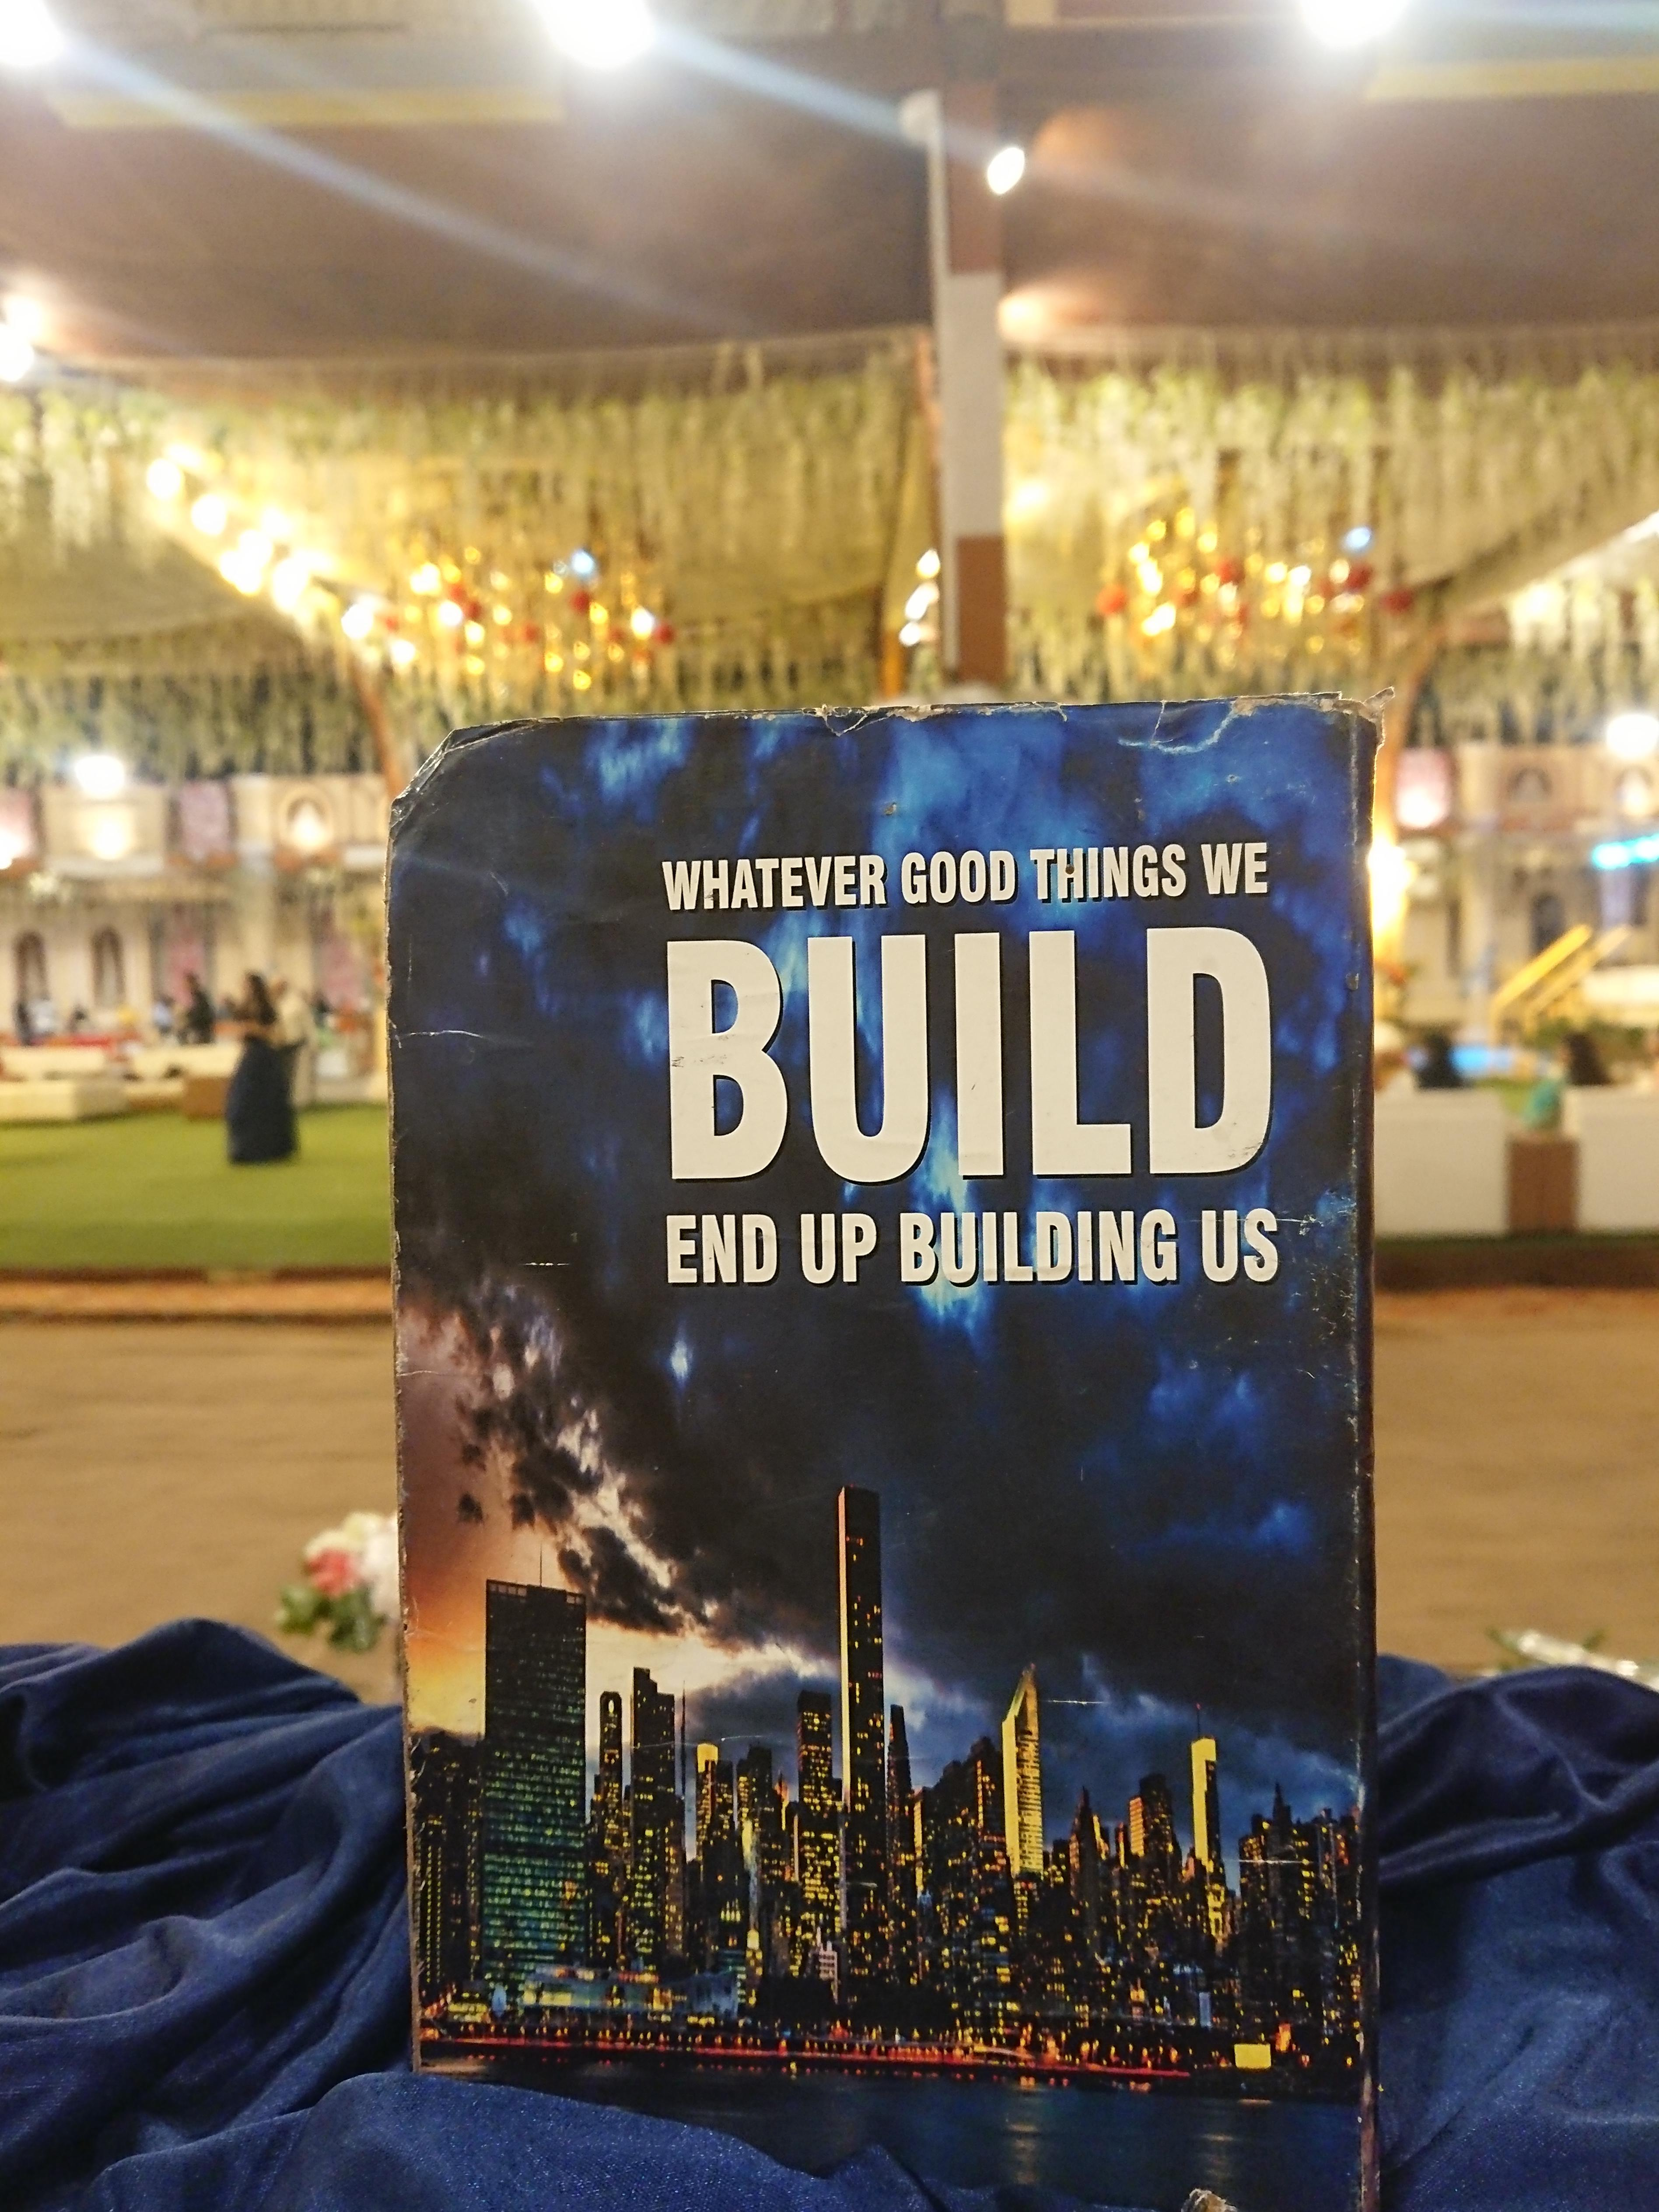 Whatever good things we build end up building us – On a dummy book at an Indian Wedding. [5056X3792]